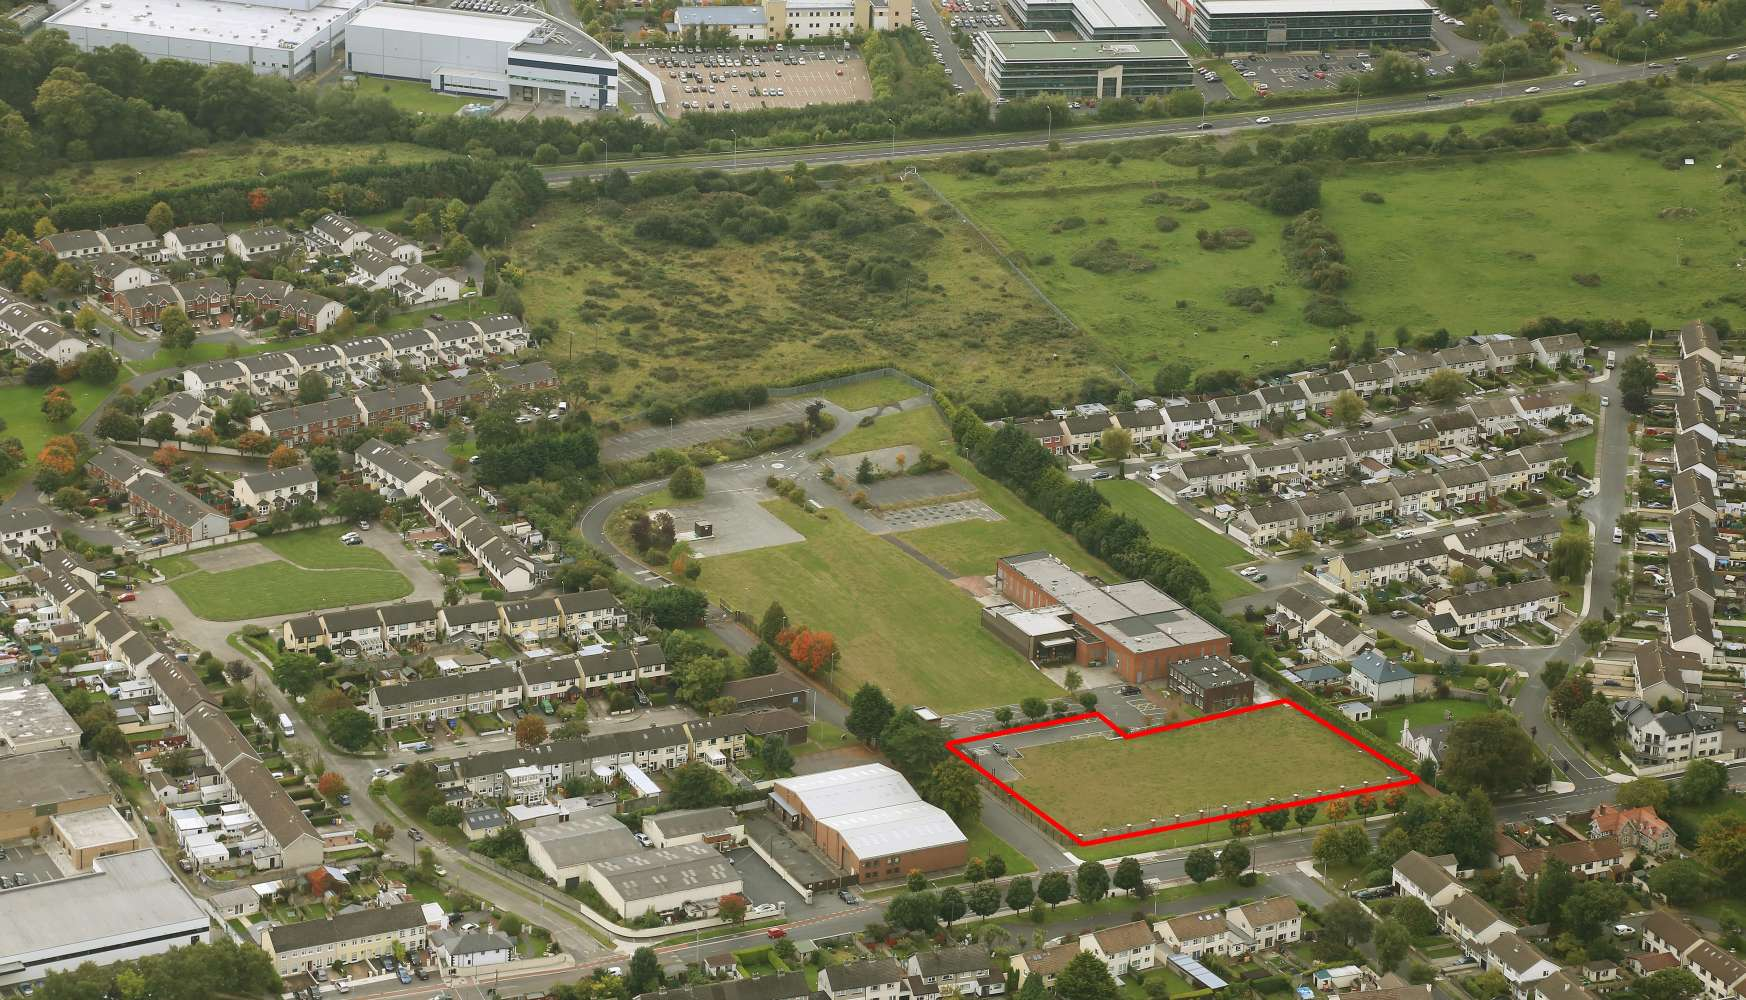 Development land Co wicklow,  - 1.15 Acre Commercial Development Site